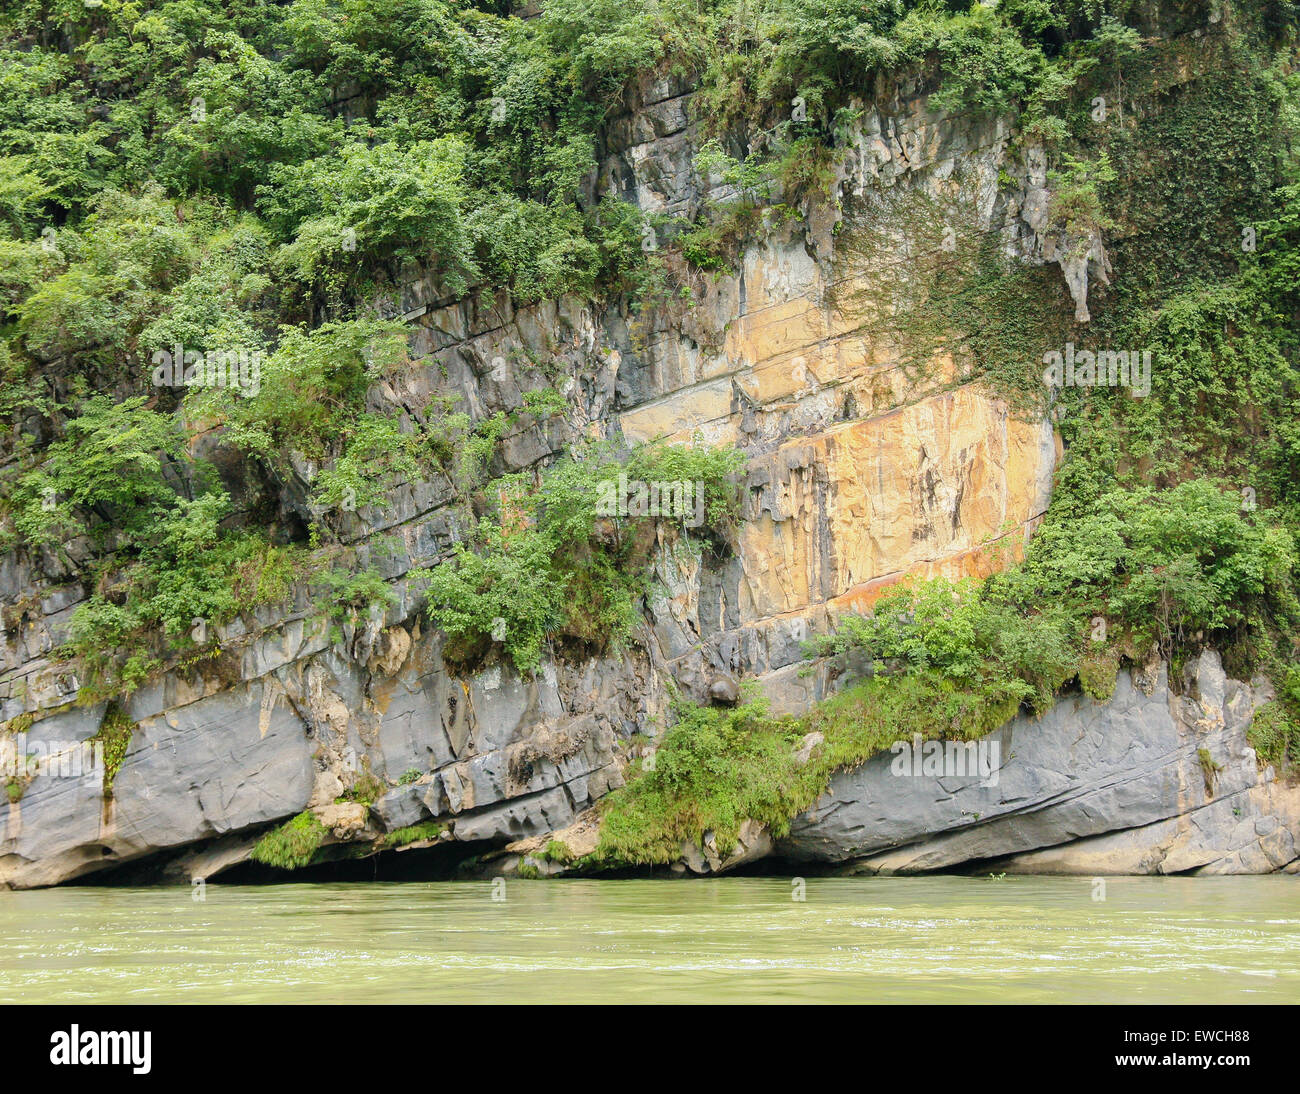 Limestone rock and vegetation over river - Stock Image